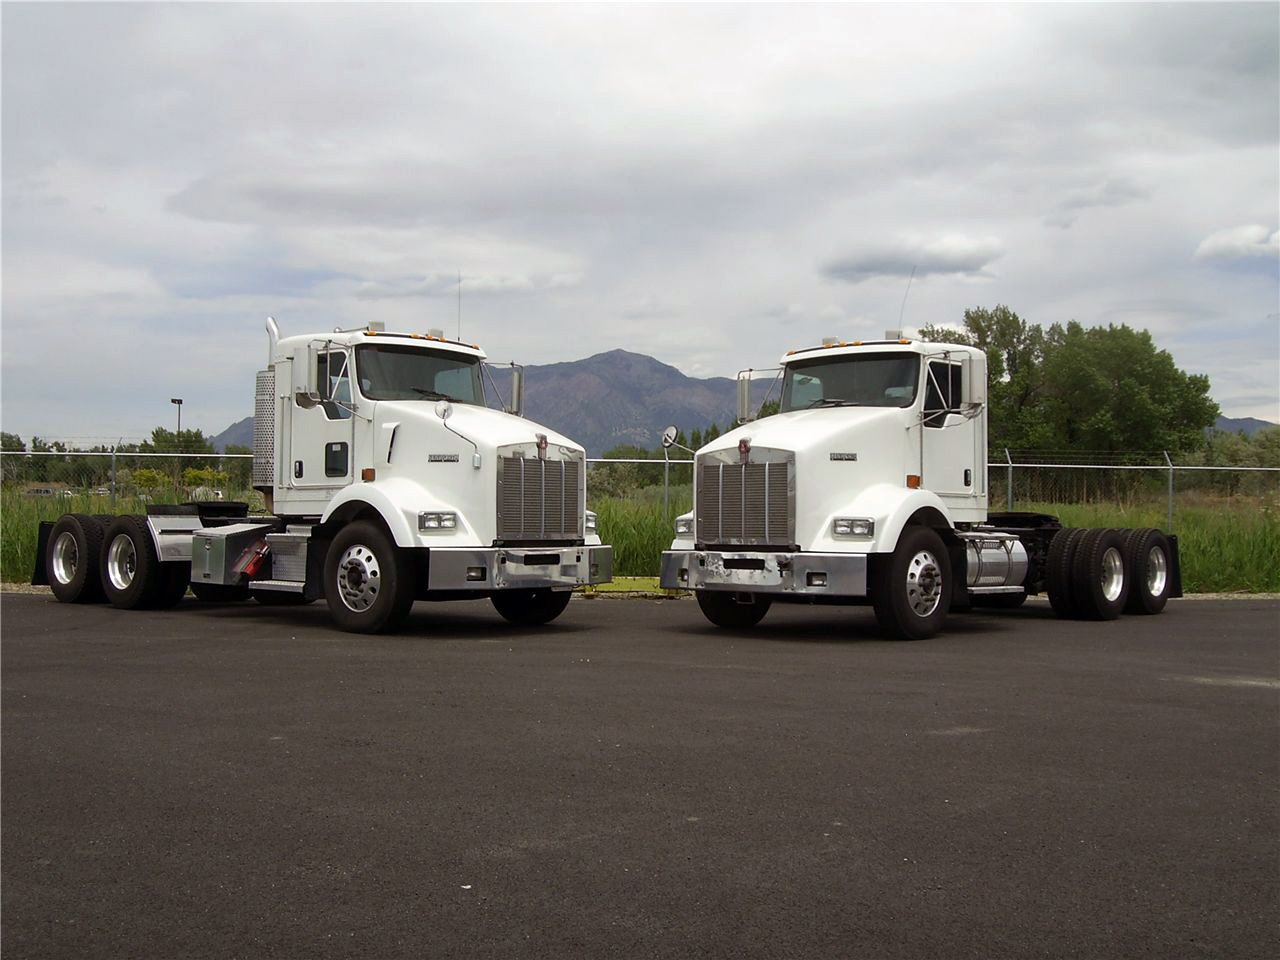 kenworth images - photo #9